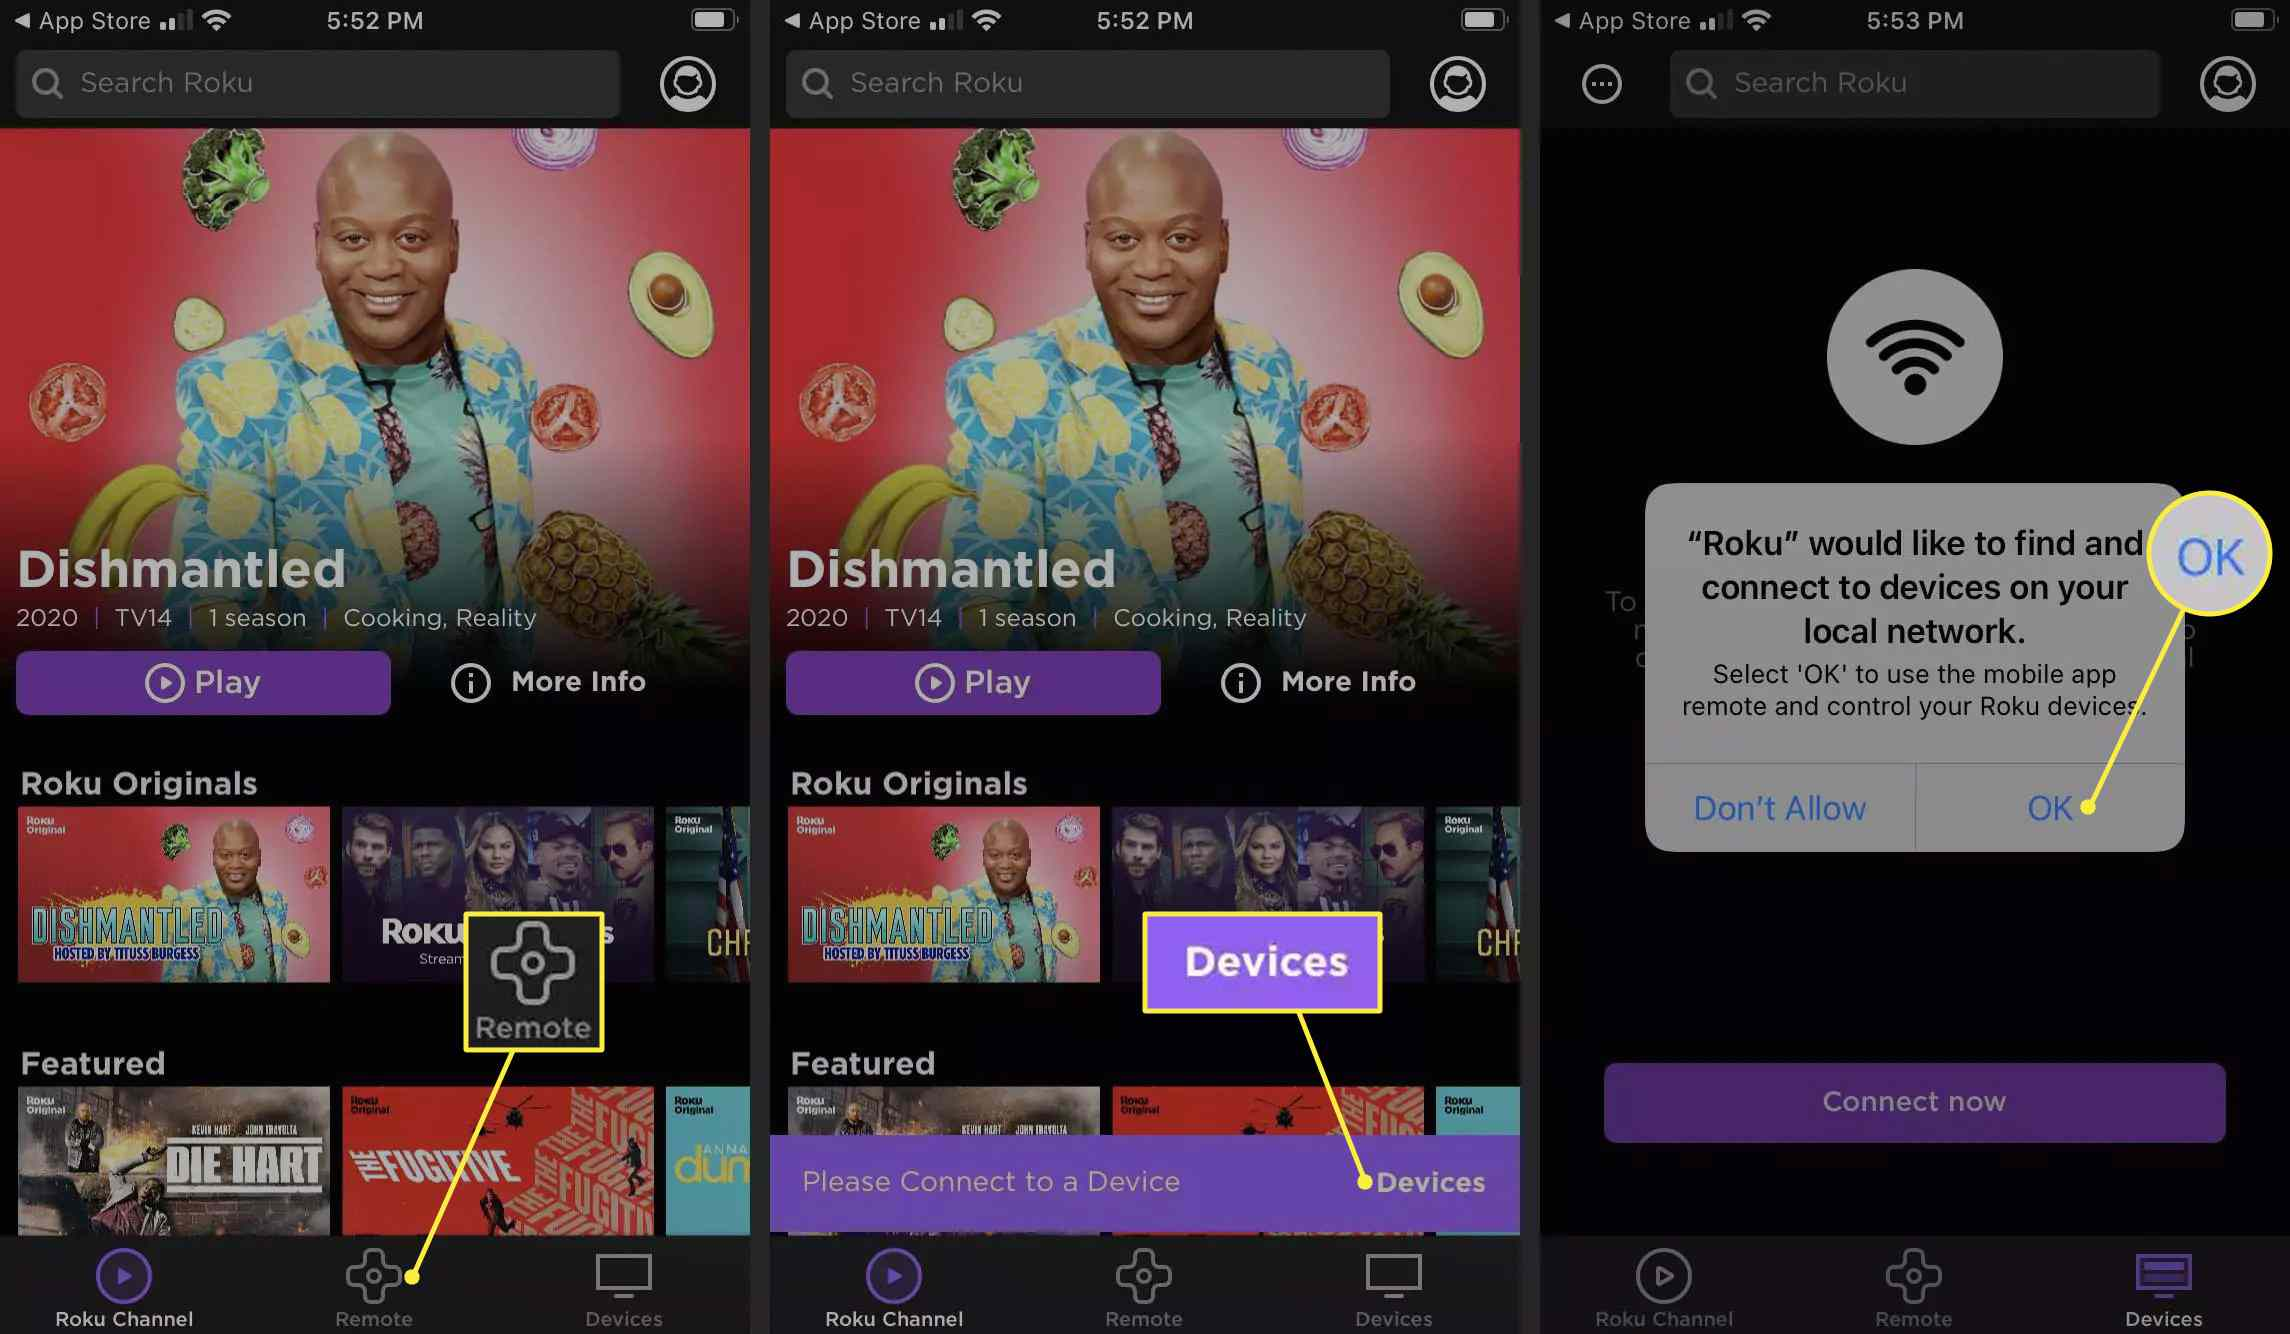 Remote, Devices, and OK highlighted in the Roku app